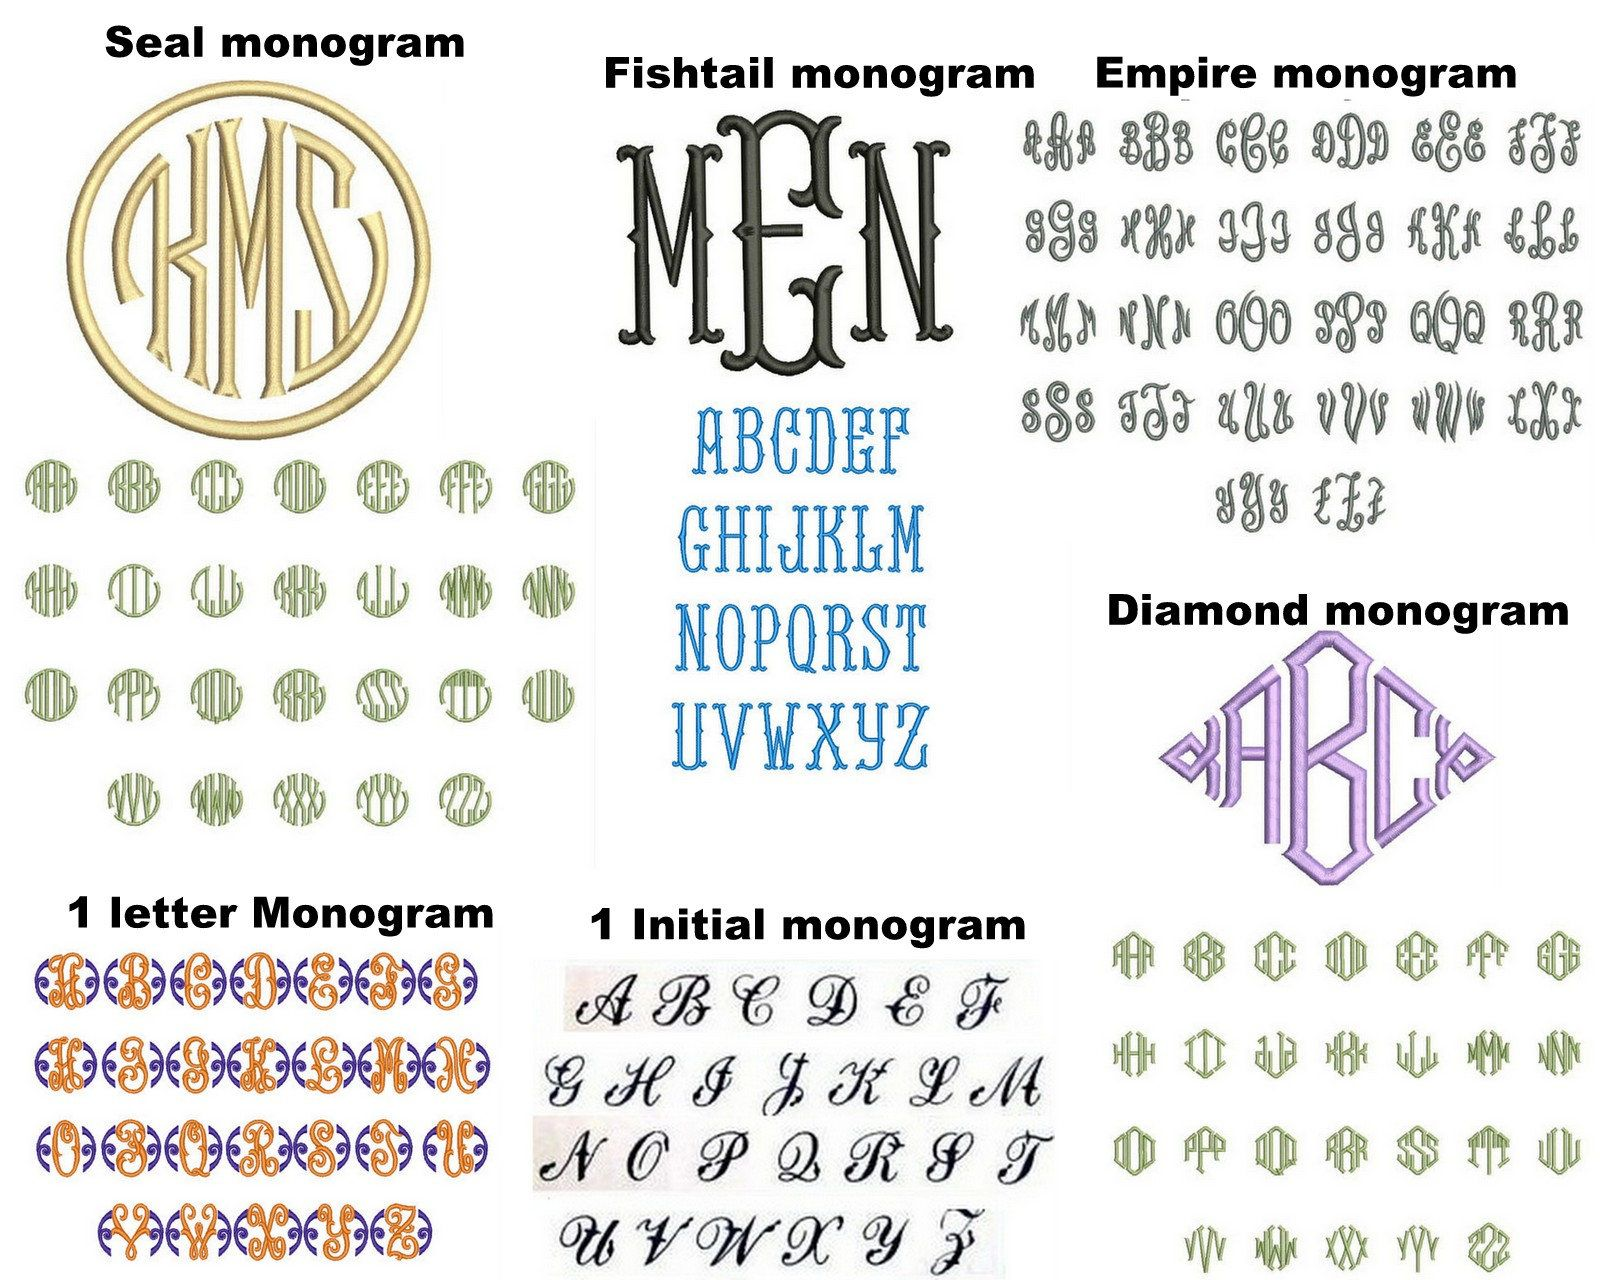 Add On Custom Embroidery Initials Or Name Monogram Embroidery